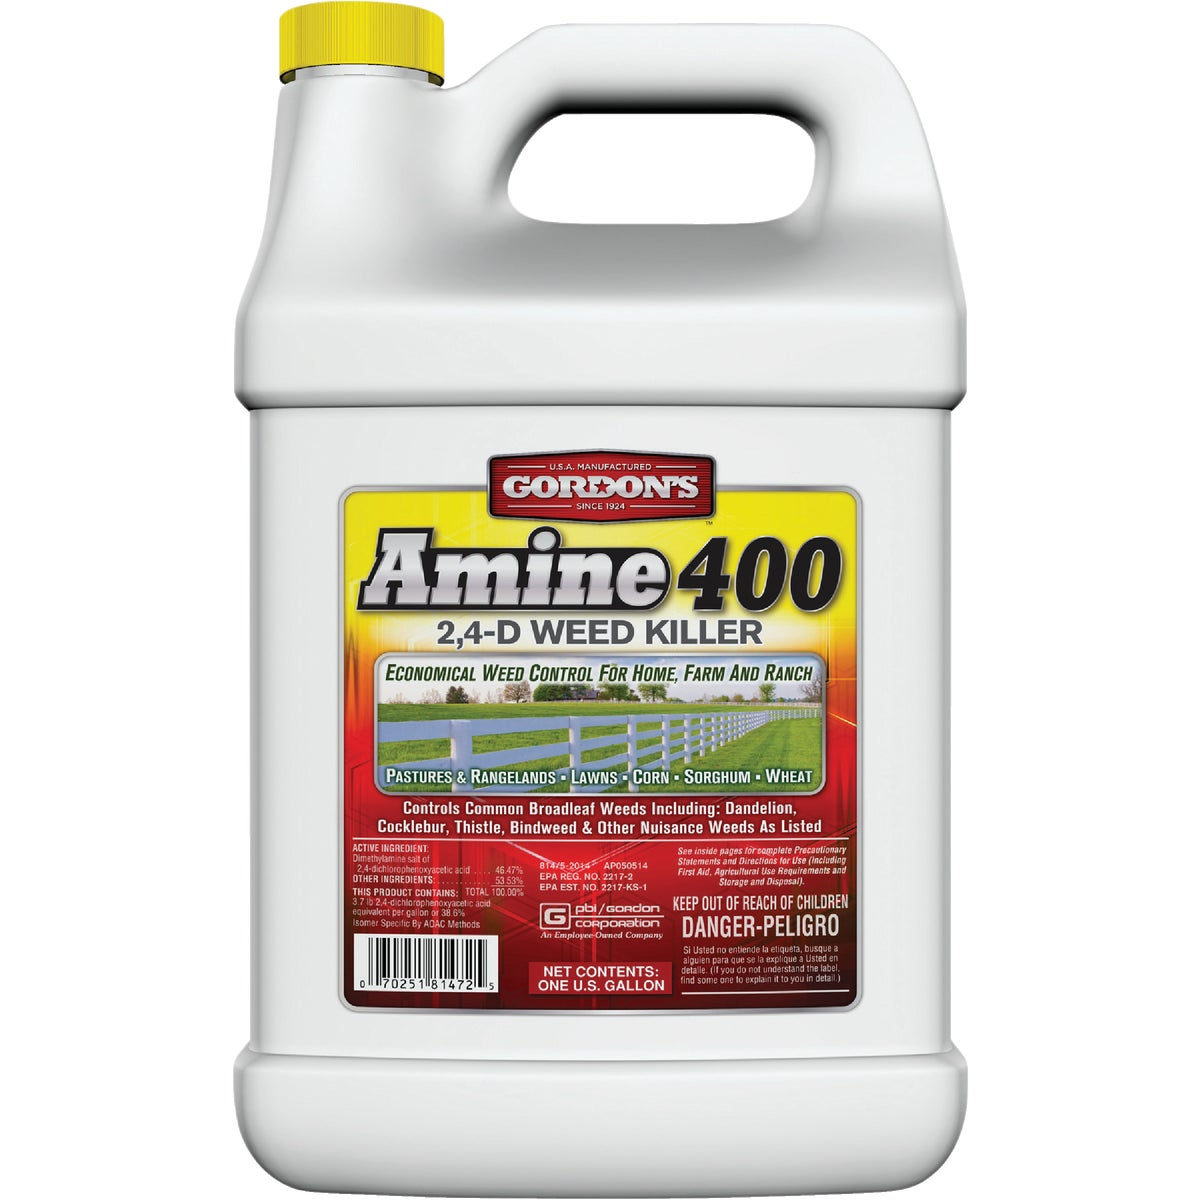 GAL AMINE 400 WEEDKILLER - 8141072 by P B I/gordon Corp